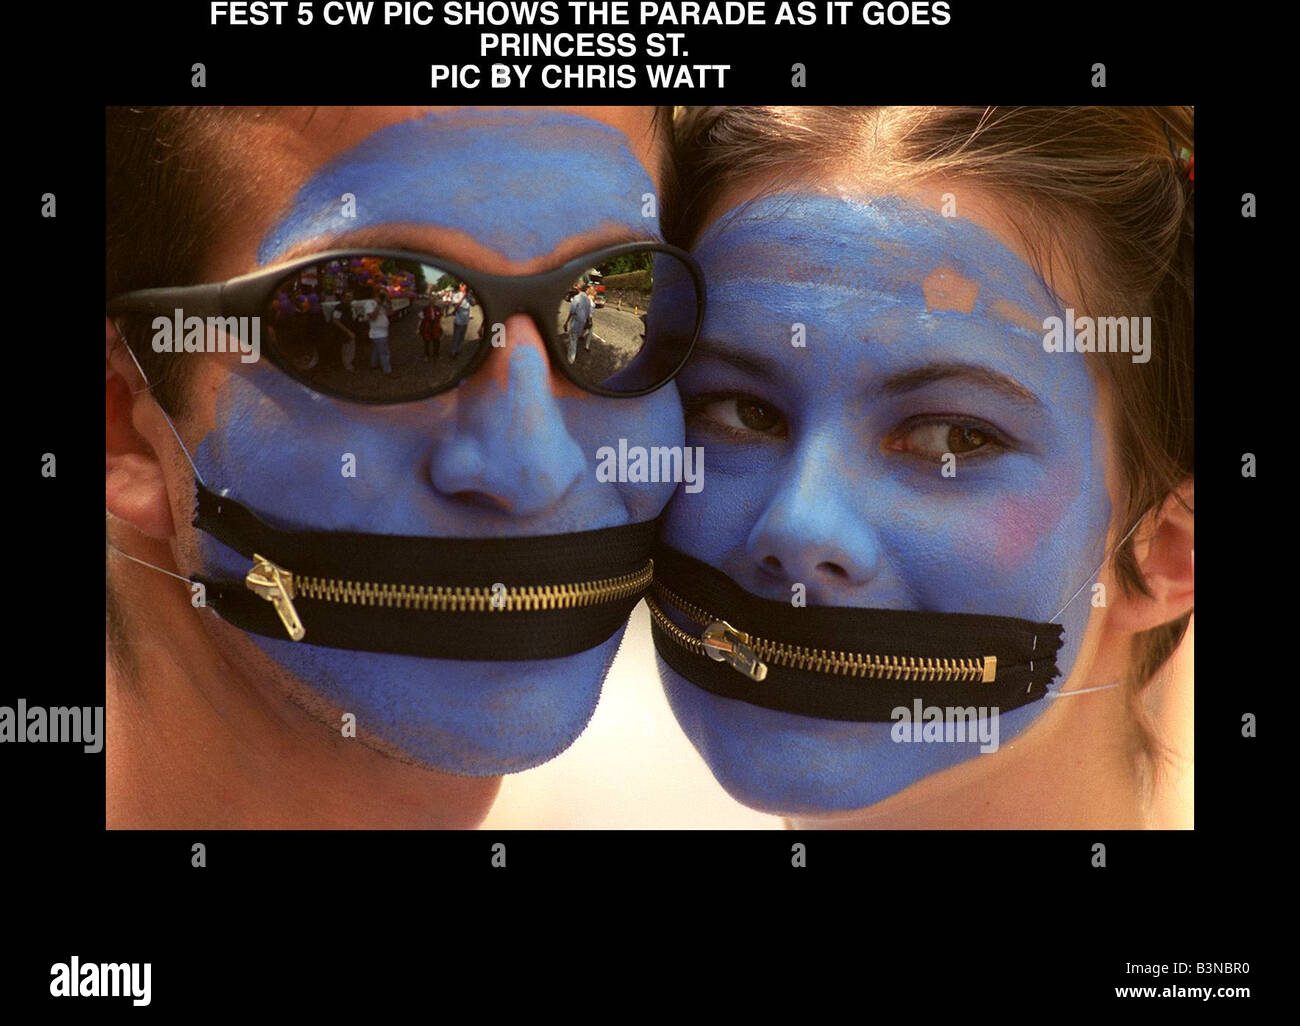 Edinburgh Festival Parade painted blue faces August 1997 With zip fasteners for mouths - Stock Image